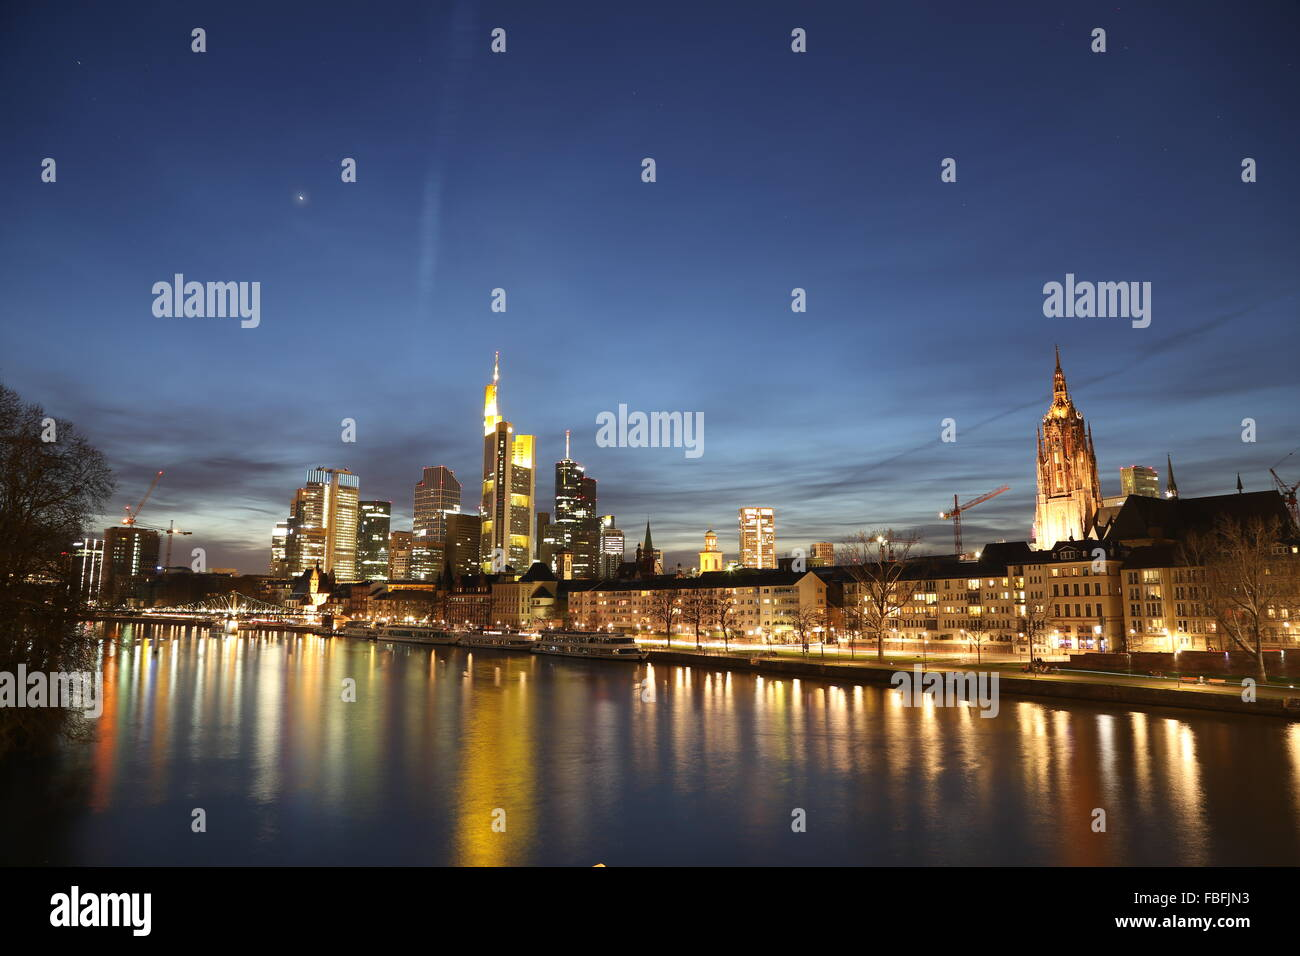 River By Illuminated Commerzbank Tower And City Against Sky At Night Stock Photo